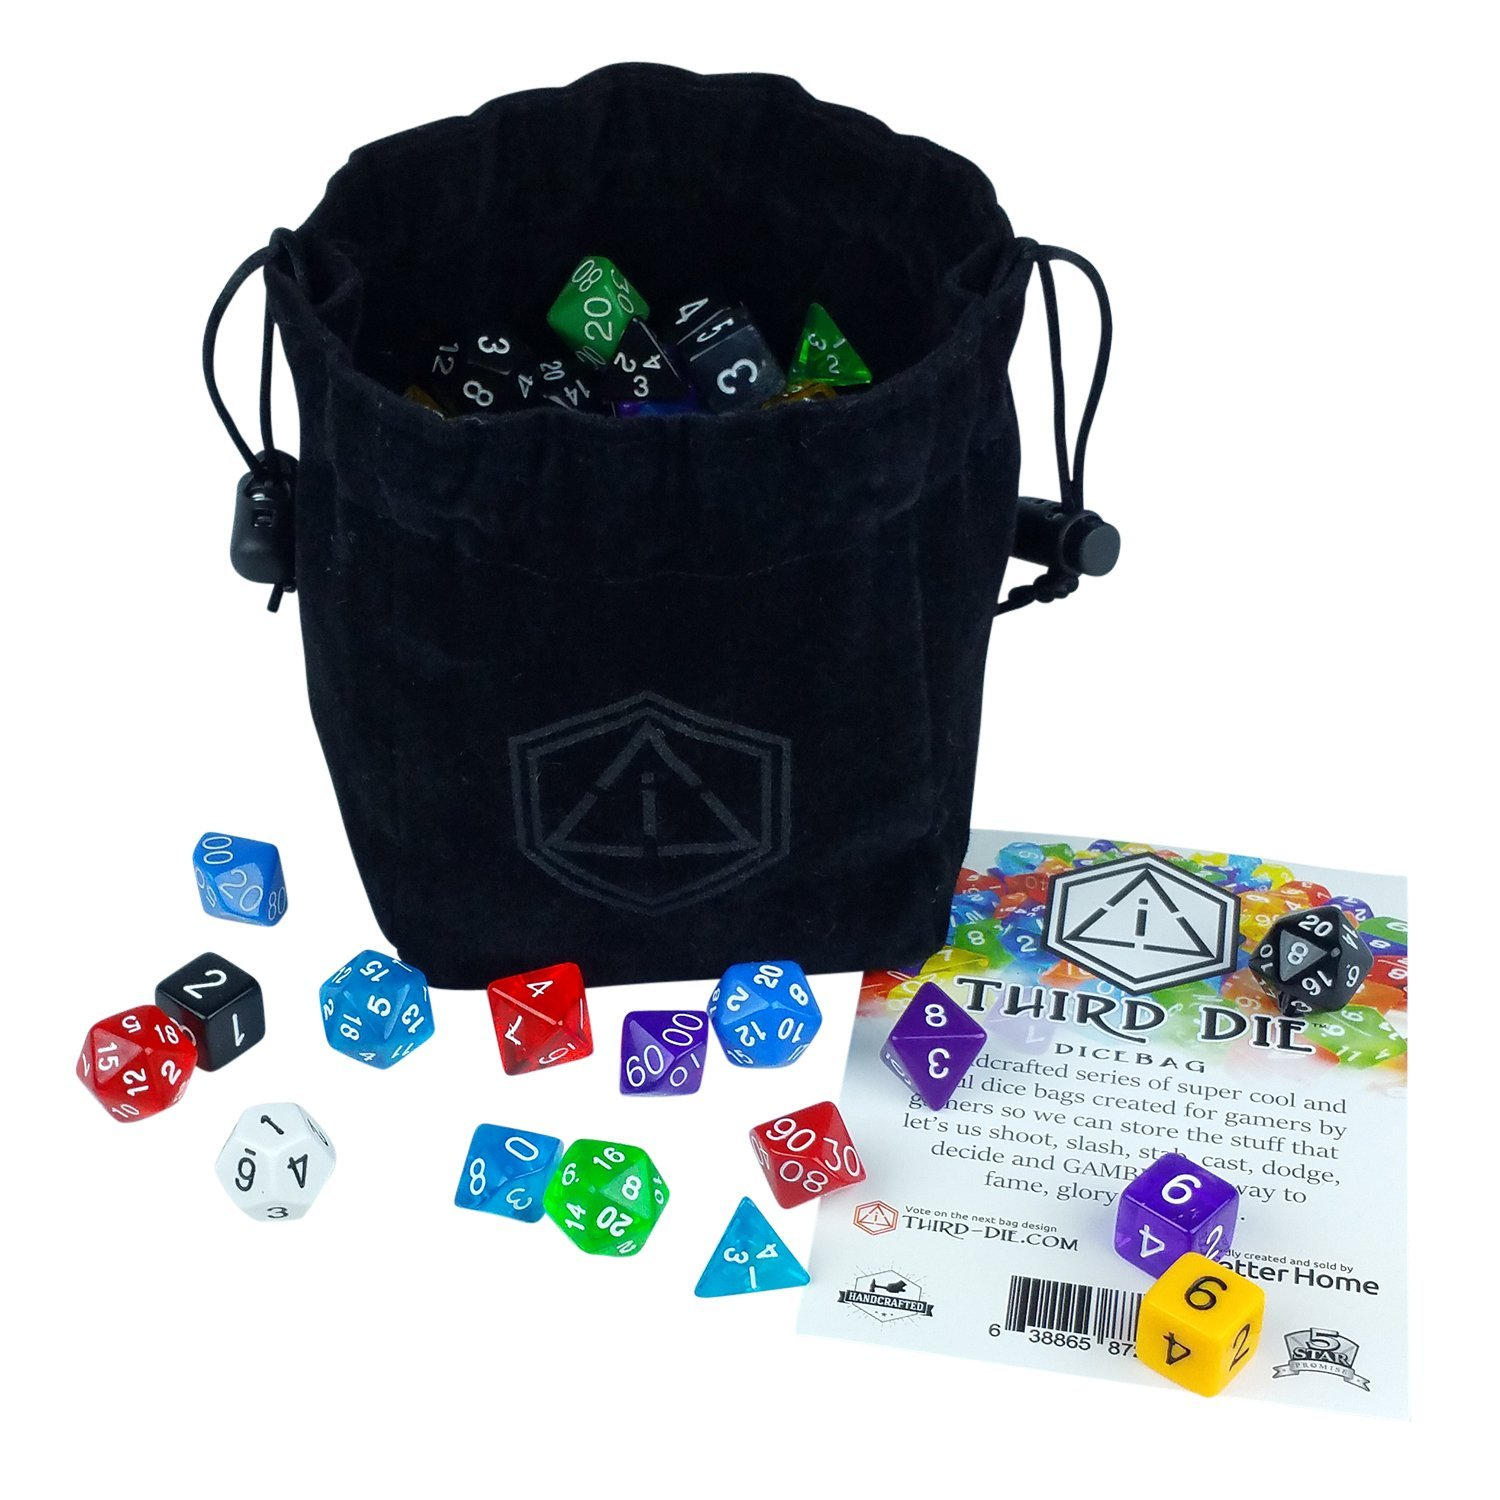 Third Die Dice Bag - Handcrafted, Reversible Drawstring Bag. Stands Open On The Table, Locks Closed Tight. This is the all-black ''VOID'' bag - 1 of 12 styles we sell here on Amazon.